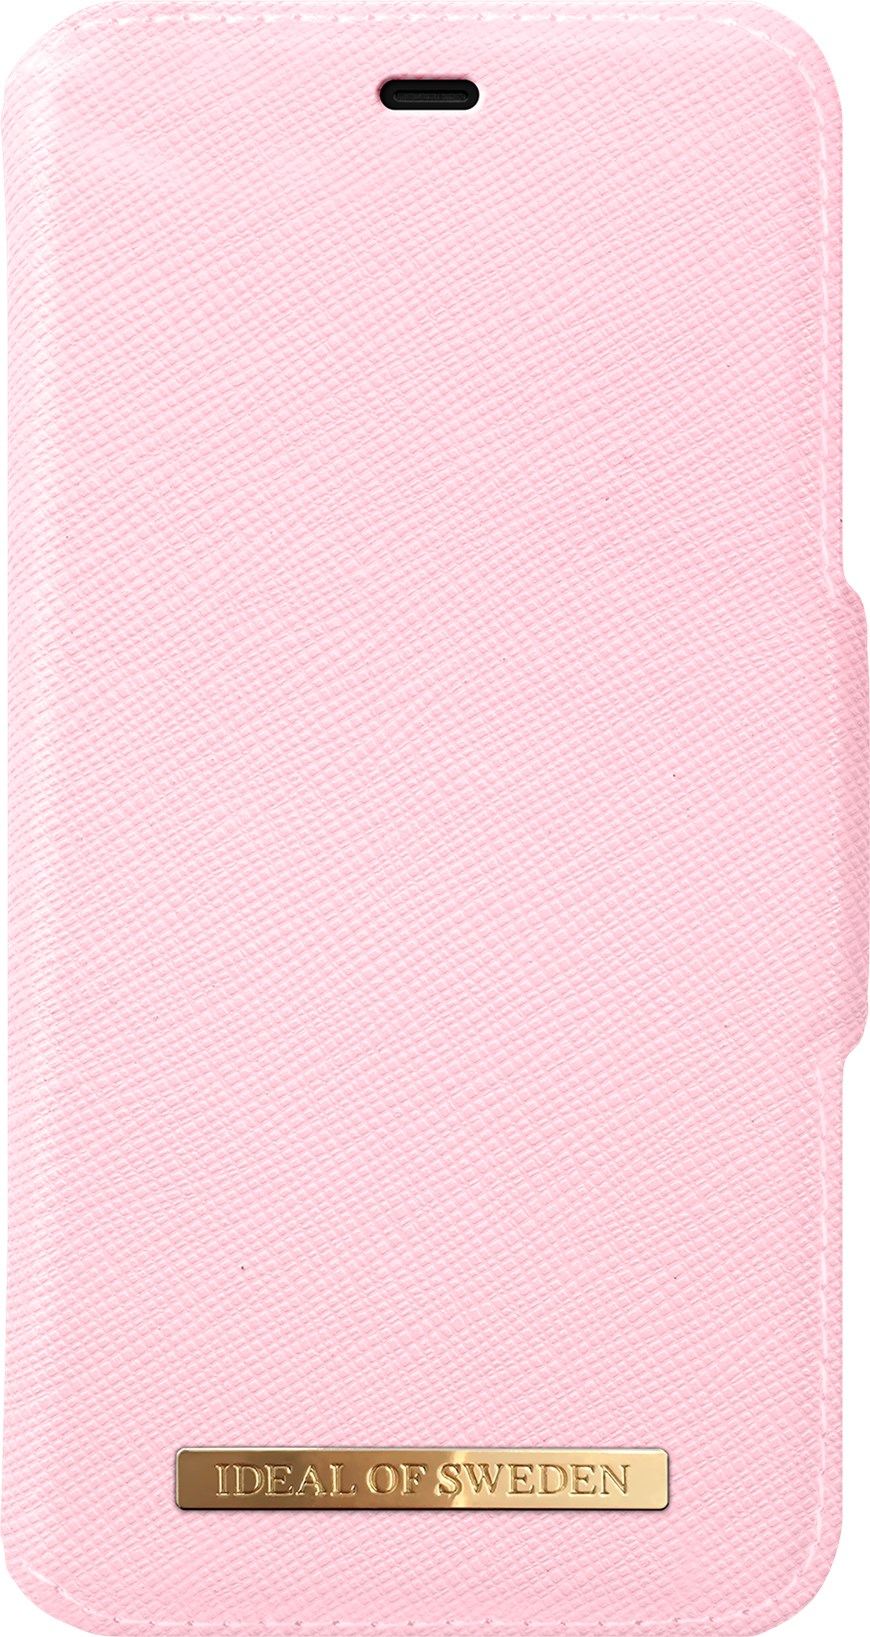 iDeal of Sweden Ideal Fashion Wallet Iphone 11 Pro Max Pink